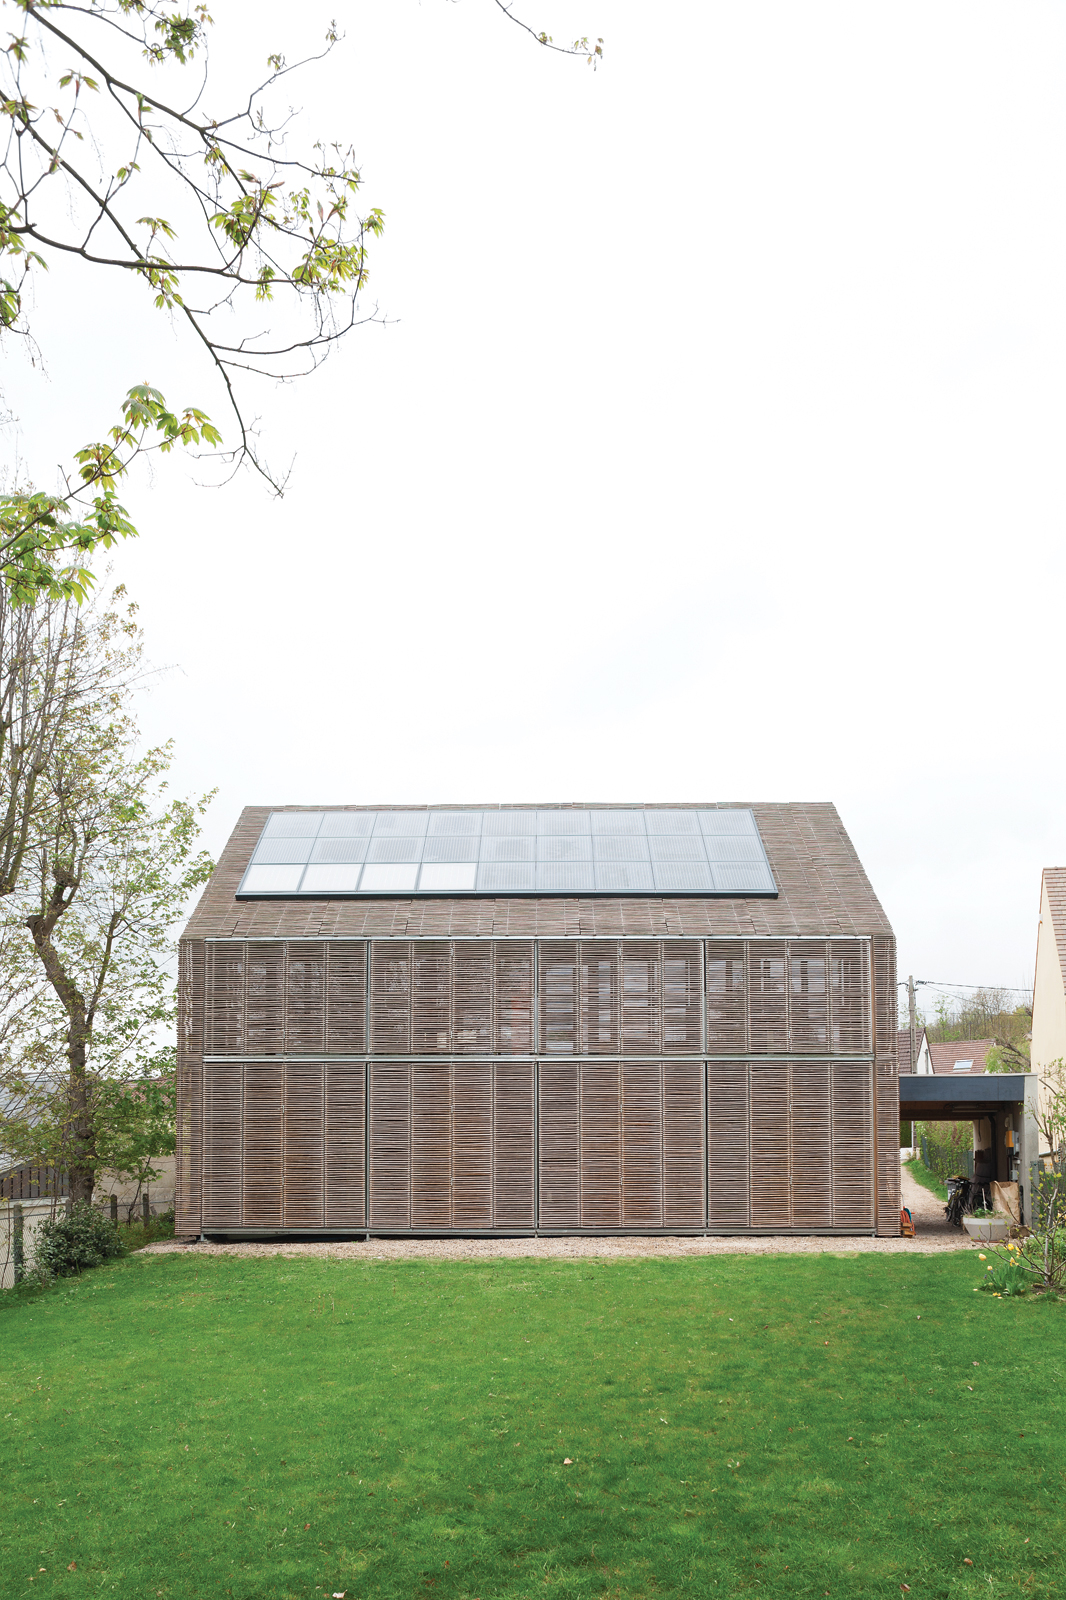 Modern bamboo-clad farmhouse with solar panels